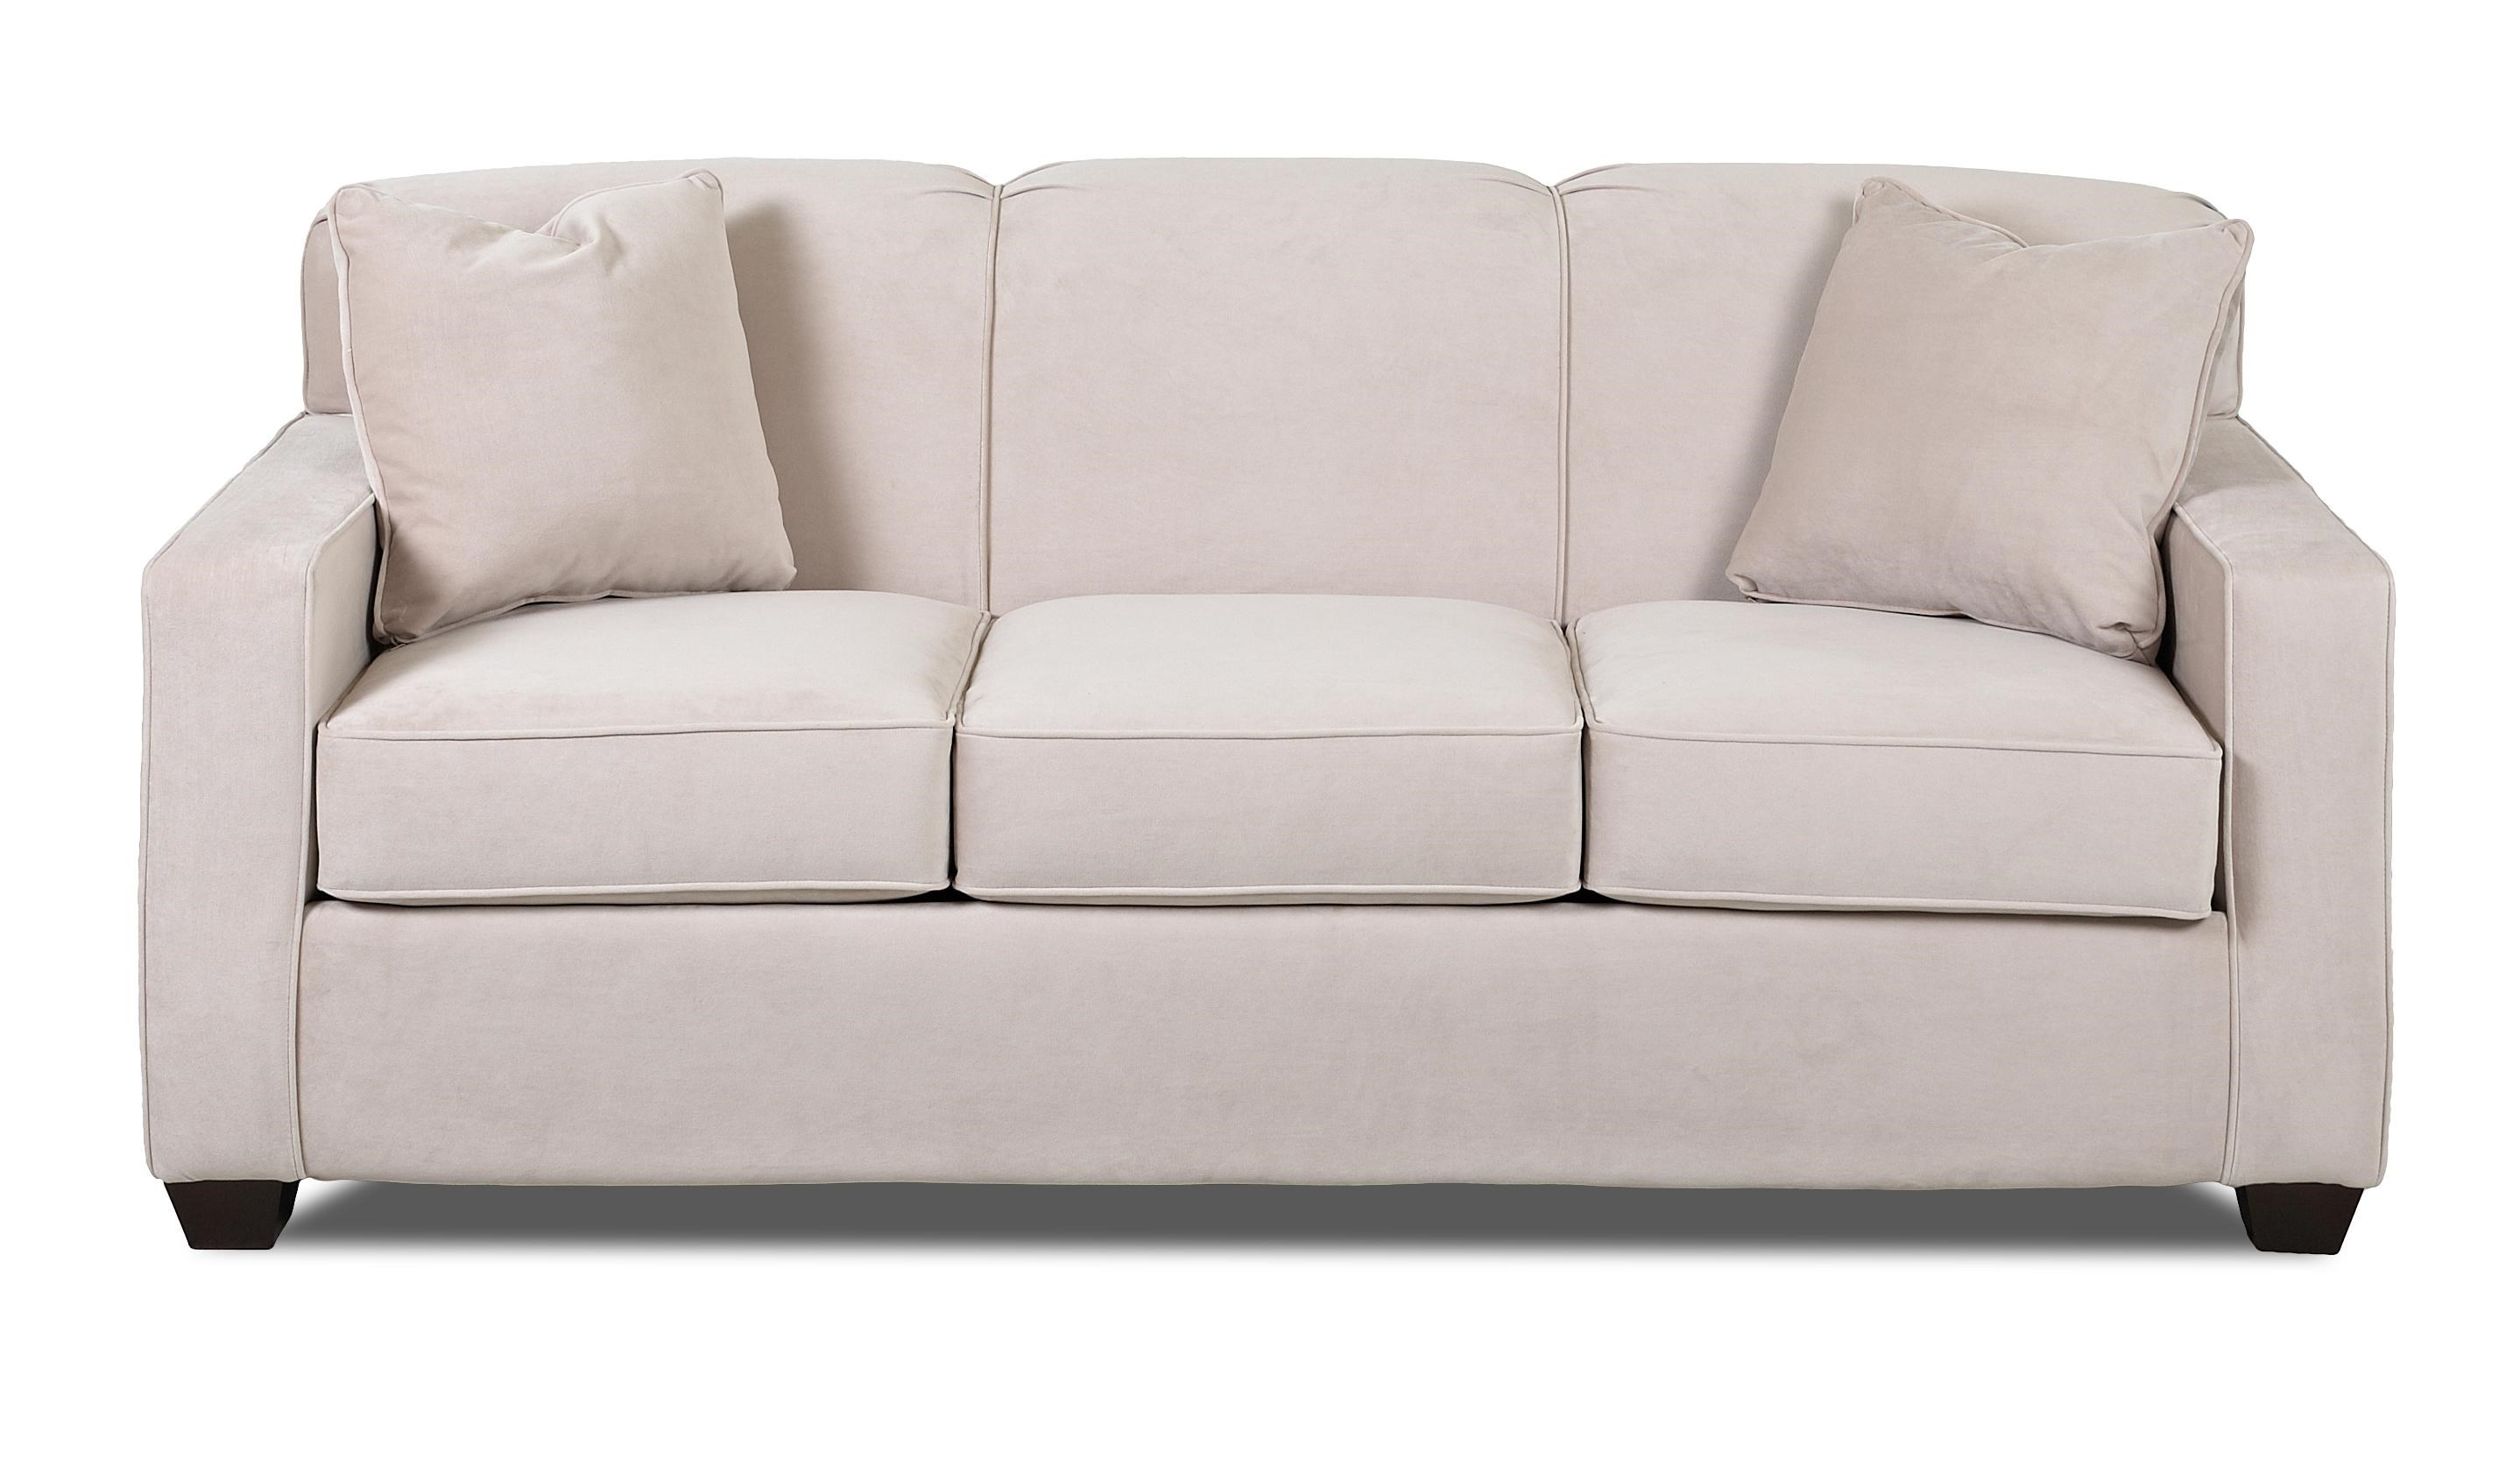 klaussner gillis dreamquest queen sleeper sofa with tight back and track arms